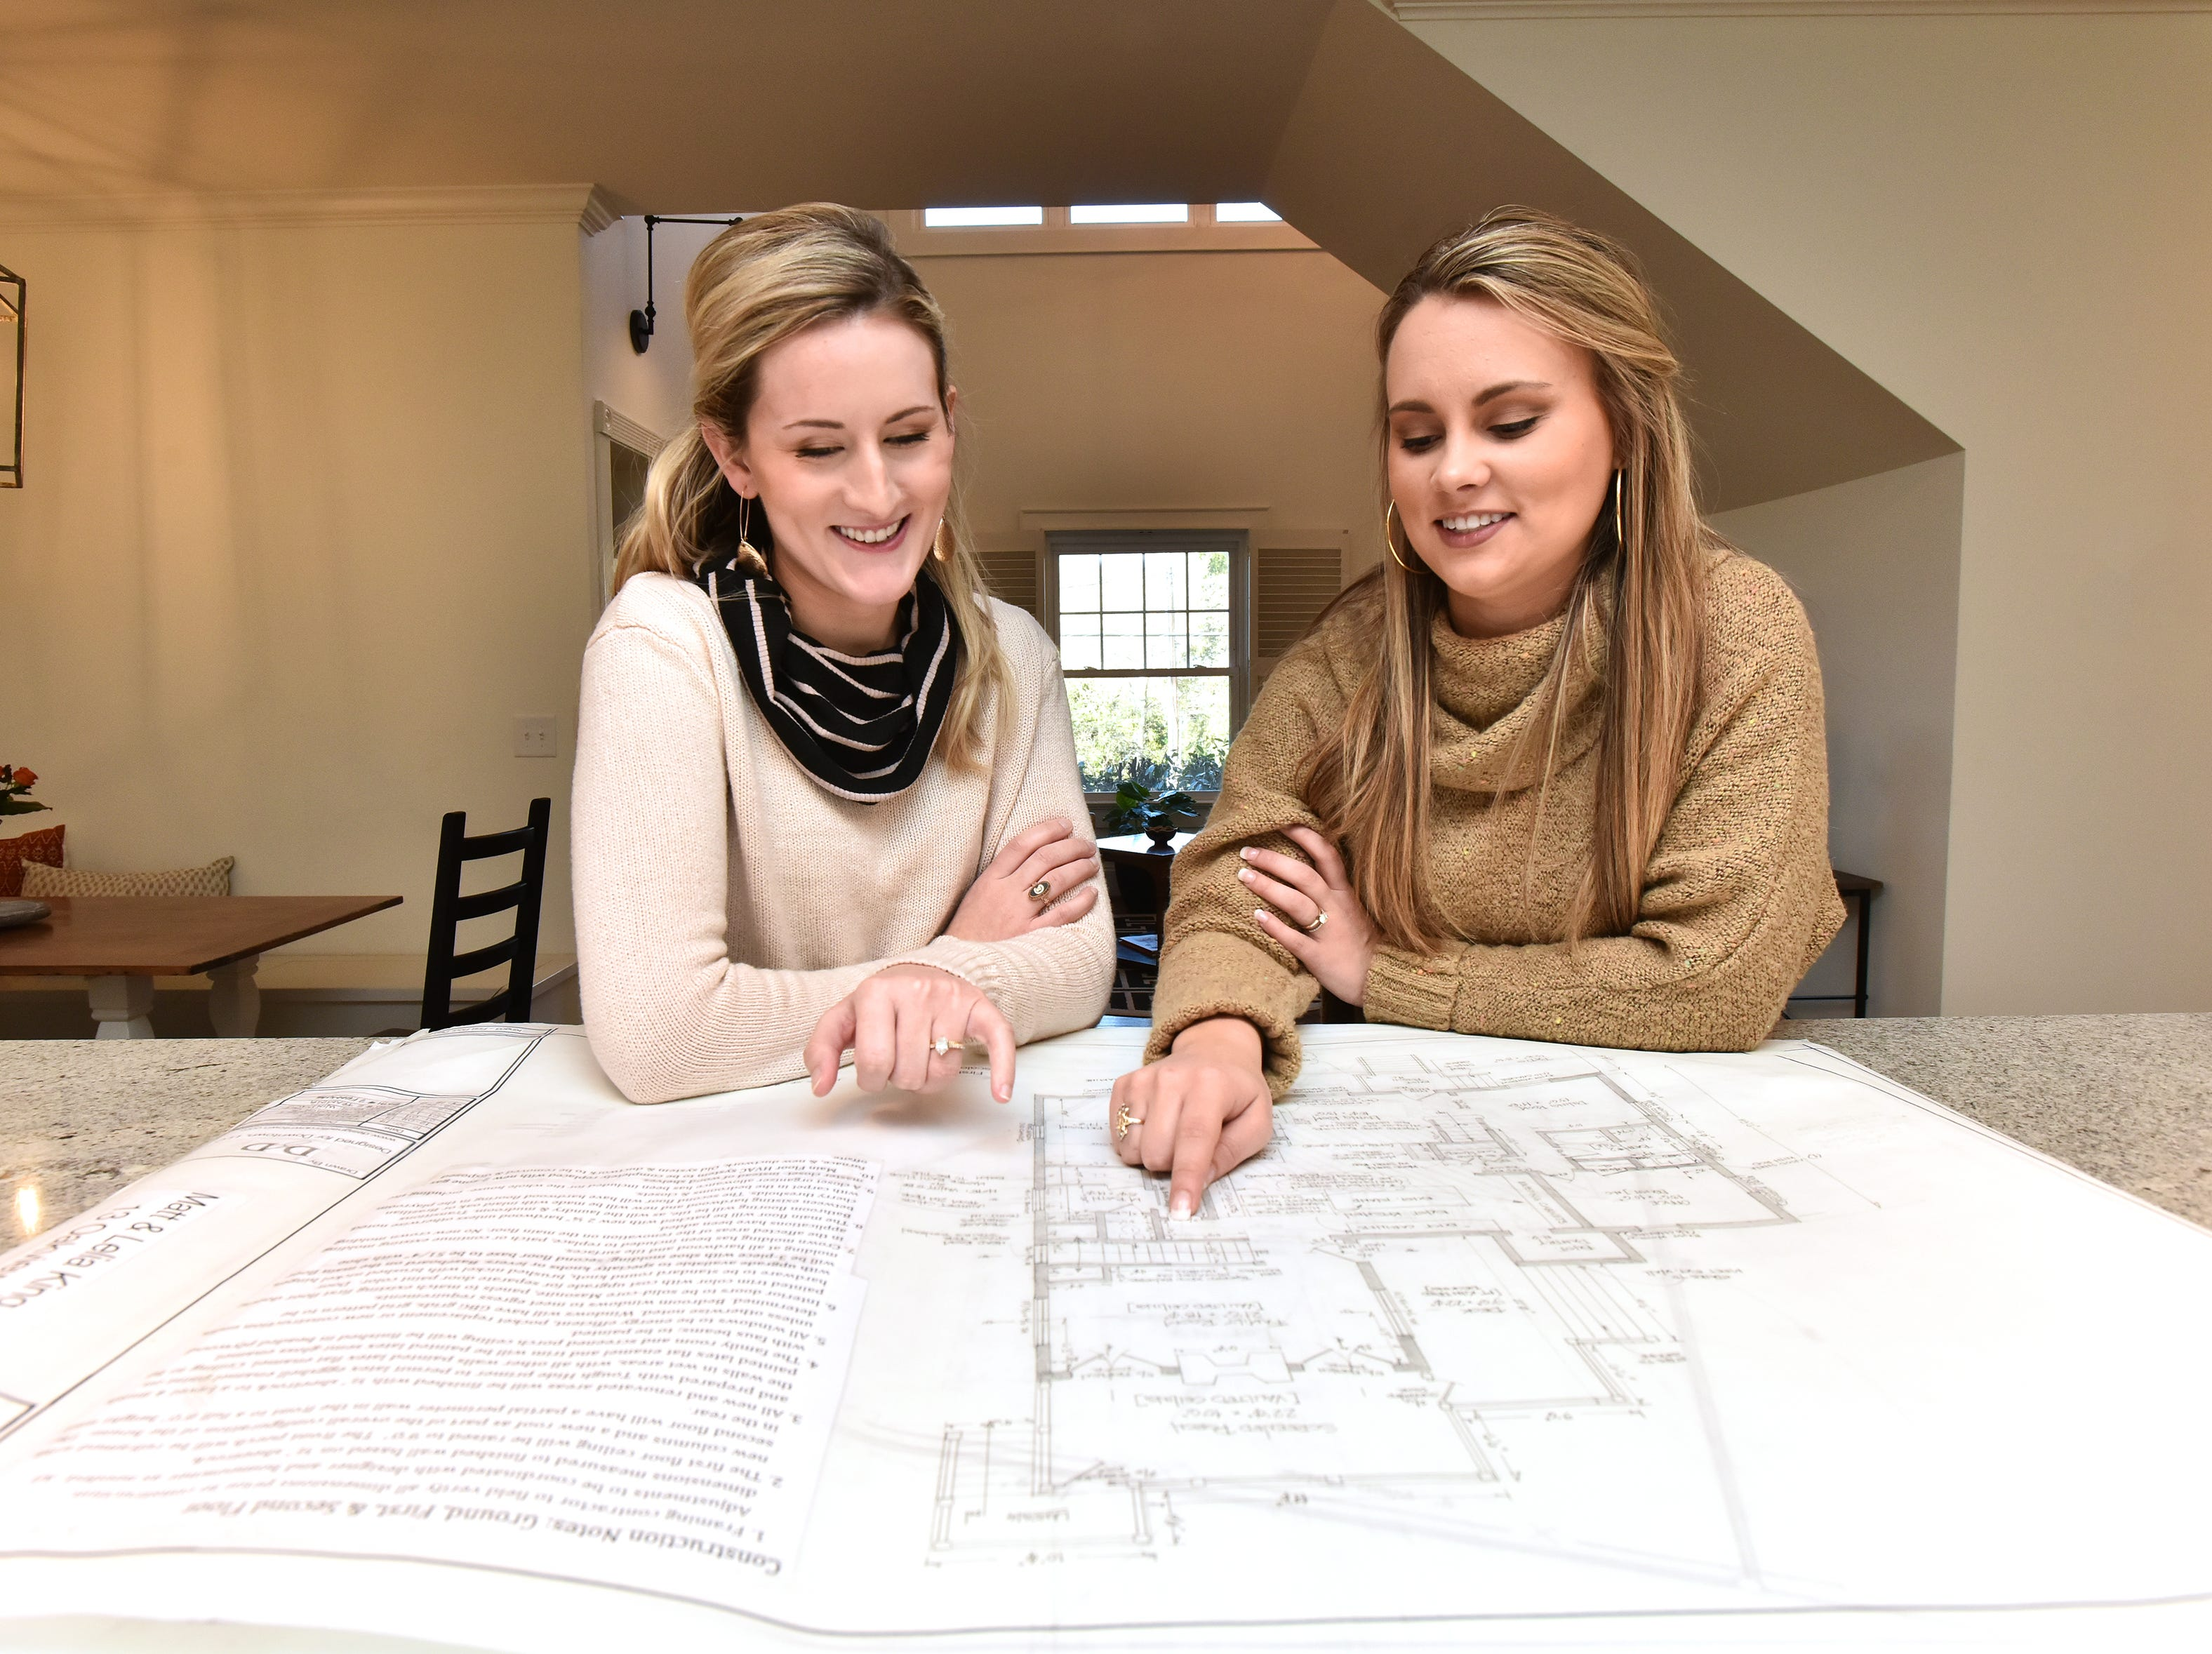 Designers Emily Infinger, left, and Lenzi Lee of Designed for Downtown look over floor plans in a Greenville family's home that they recently remodeled.